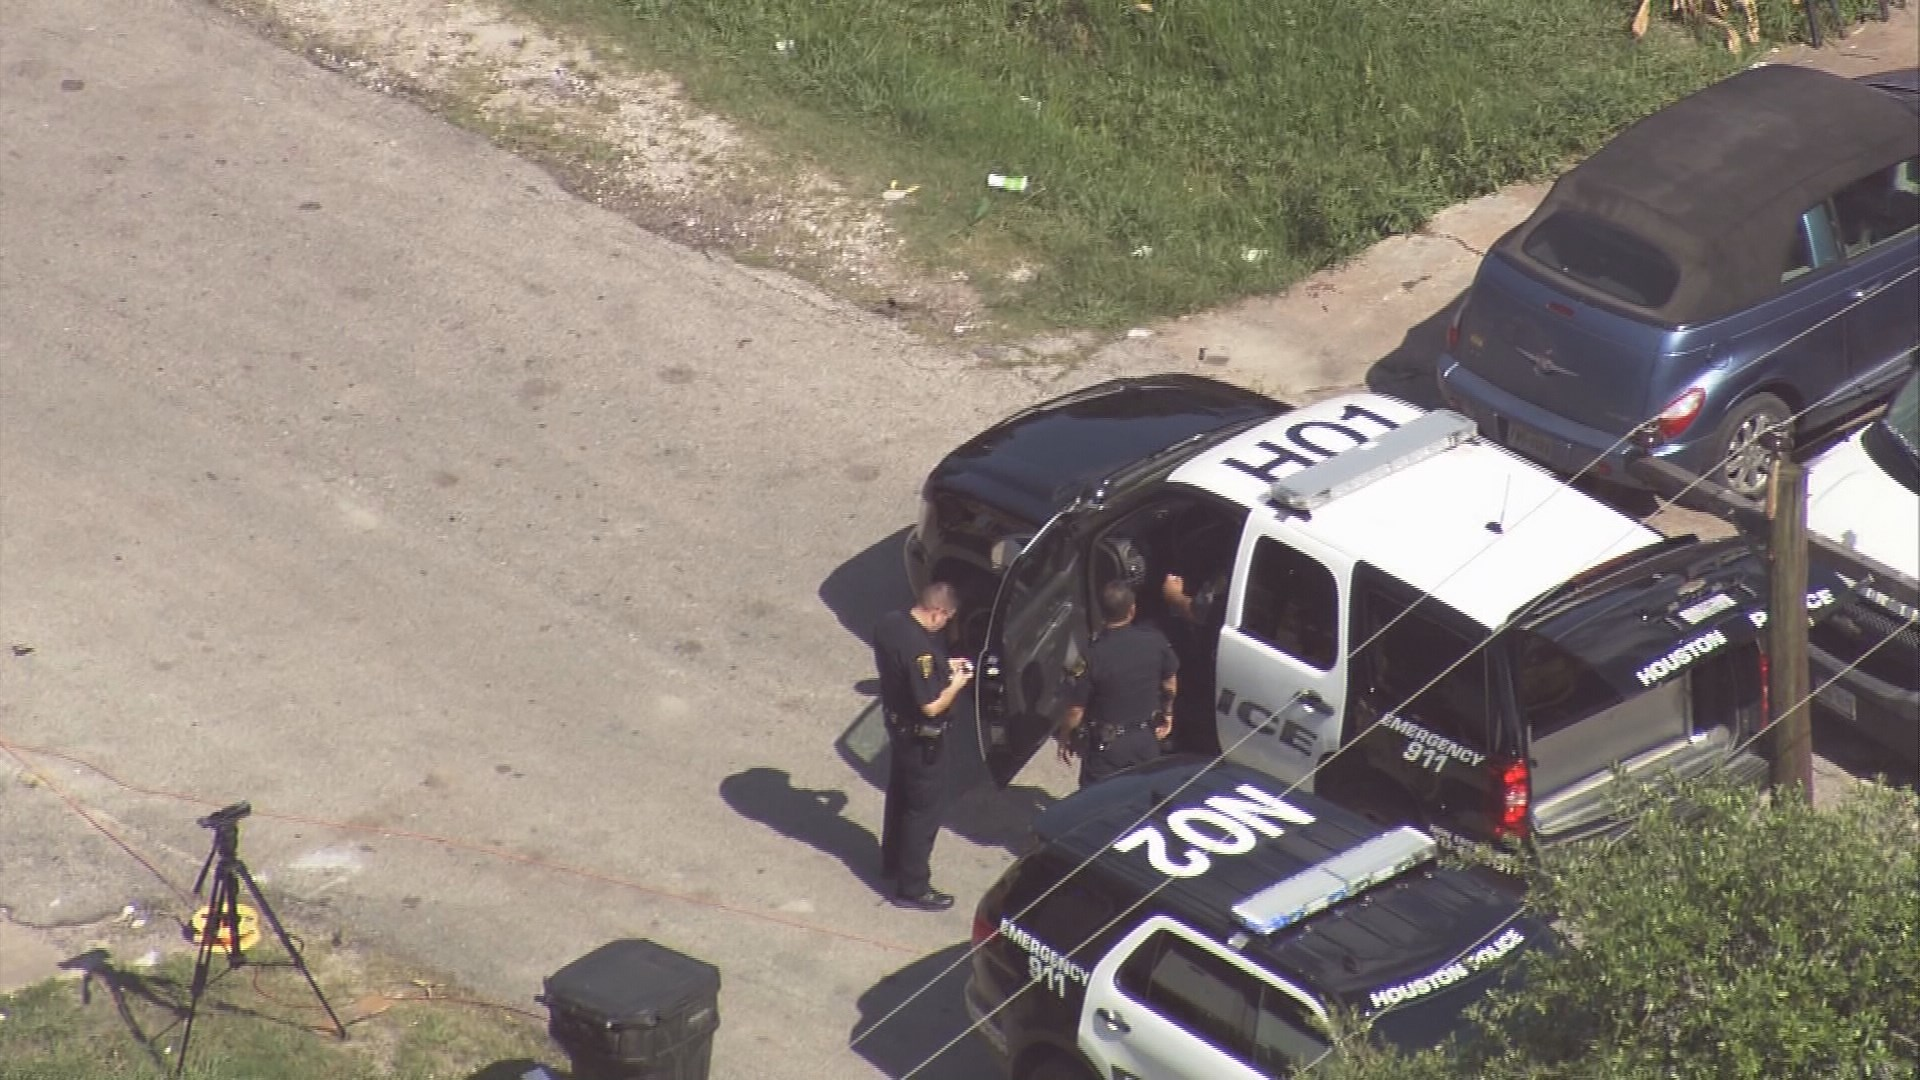 Young boy dies after getting trapped in hot auto in north Houston